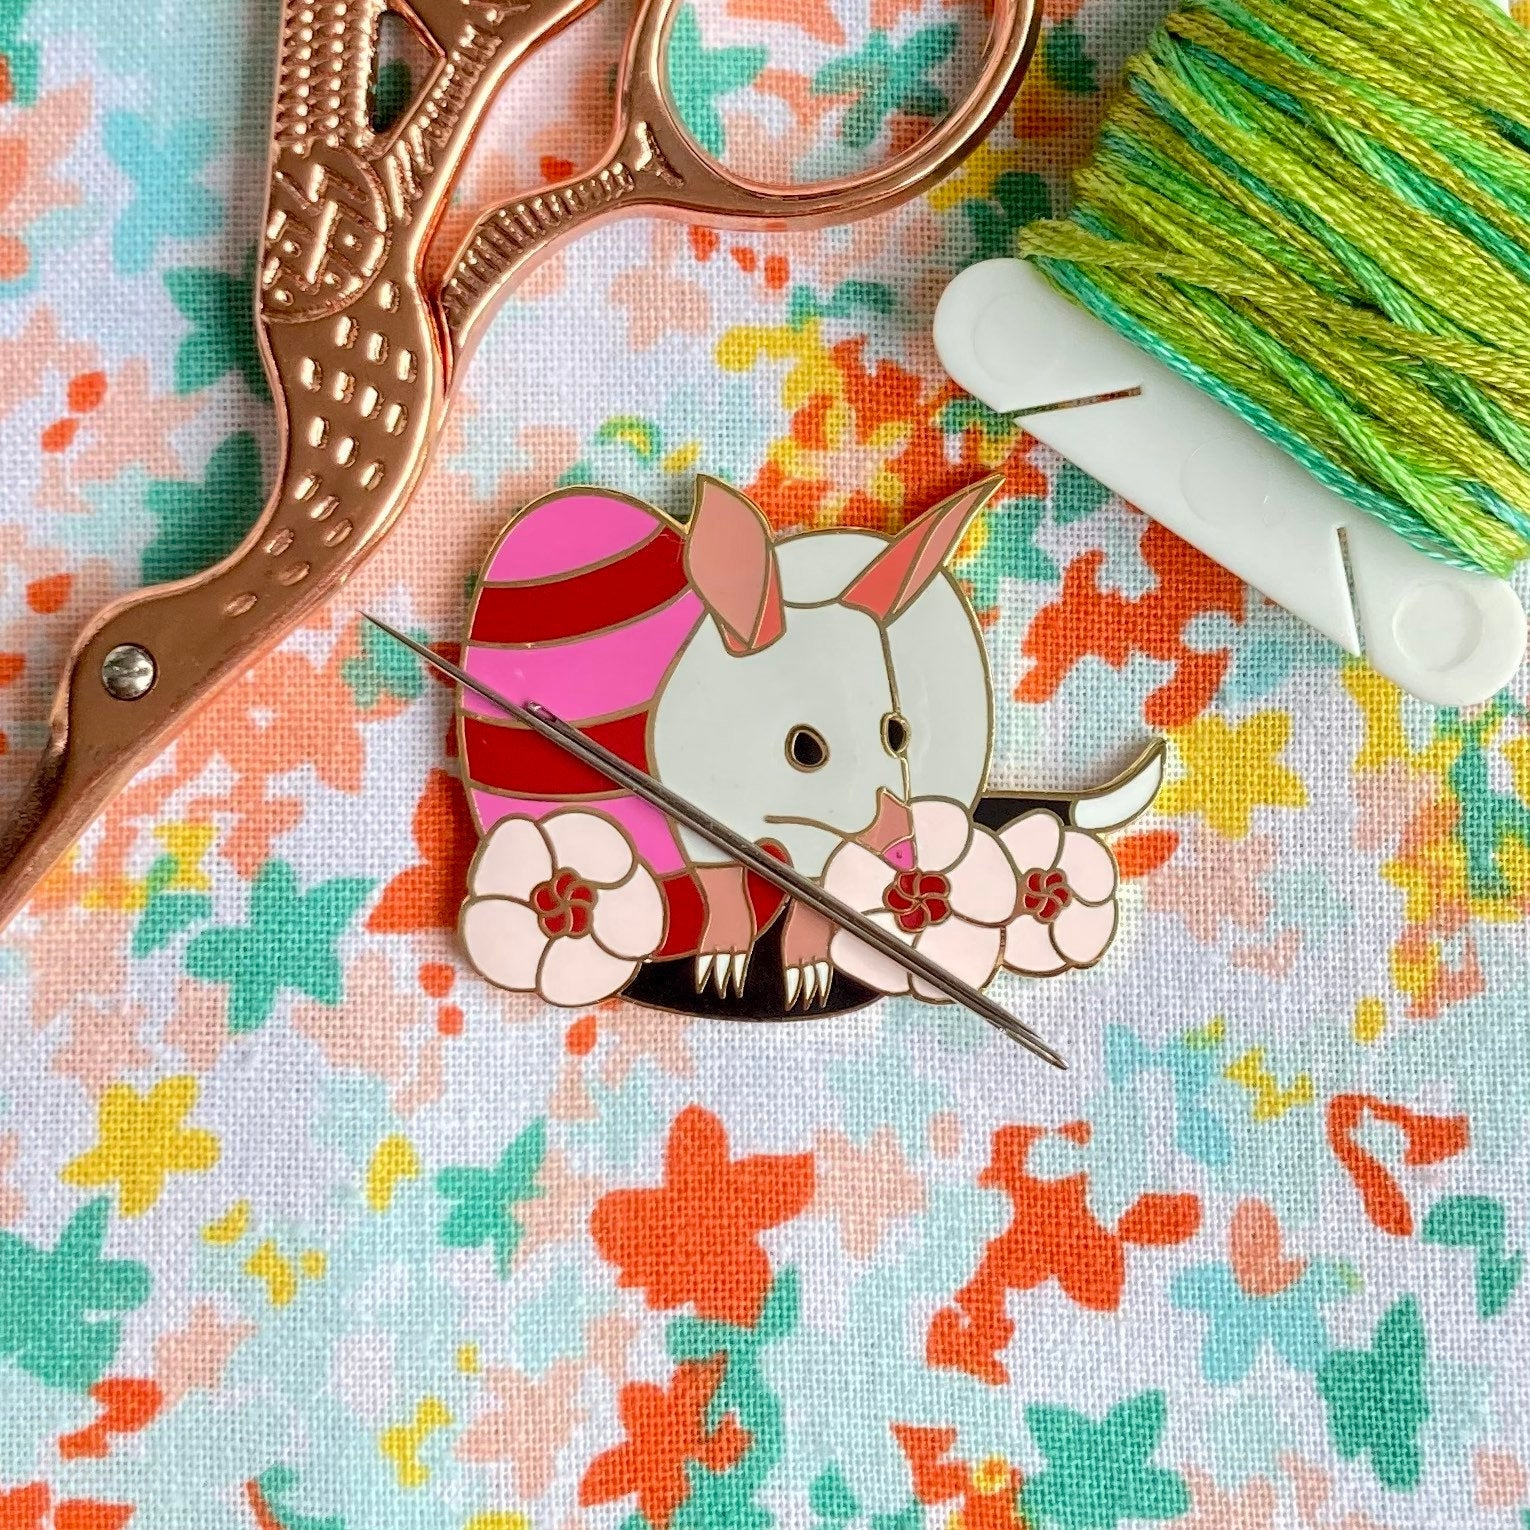 Magnetic Needleminder - Easter Bilby 40mm Hard Enamel Pin Converted to Needle Minder with Very Strong N50 Neodymium Magnets